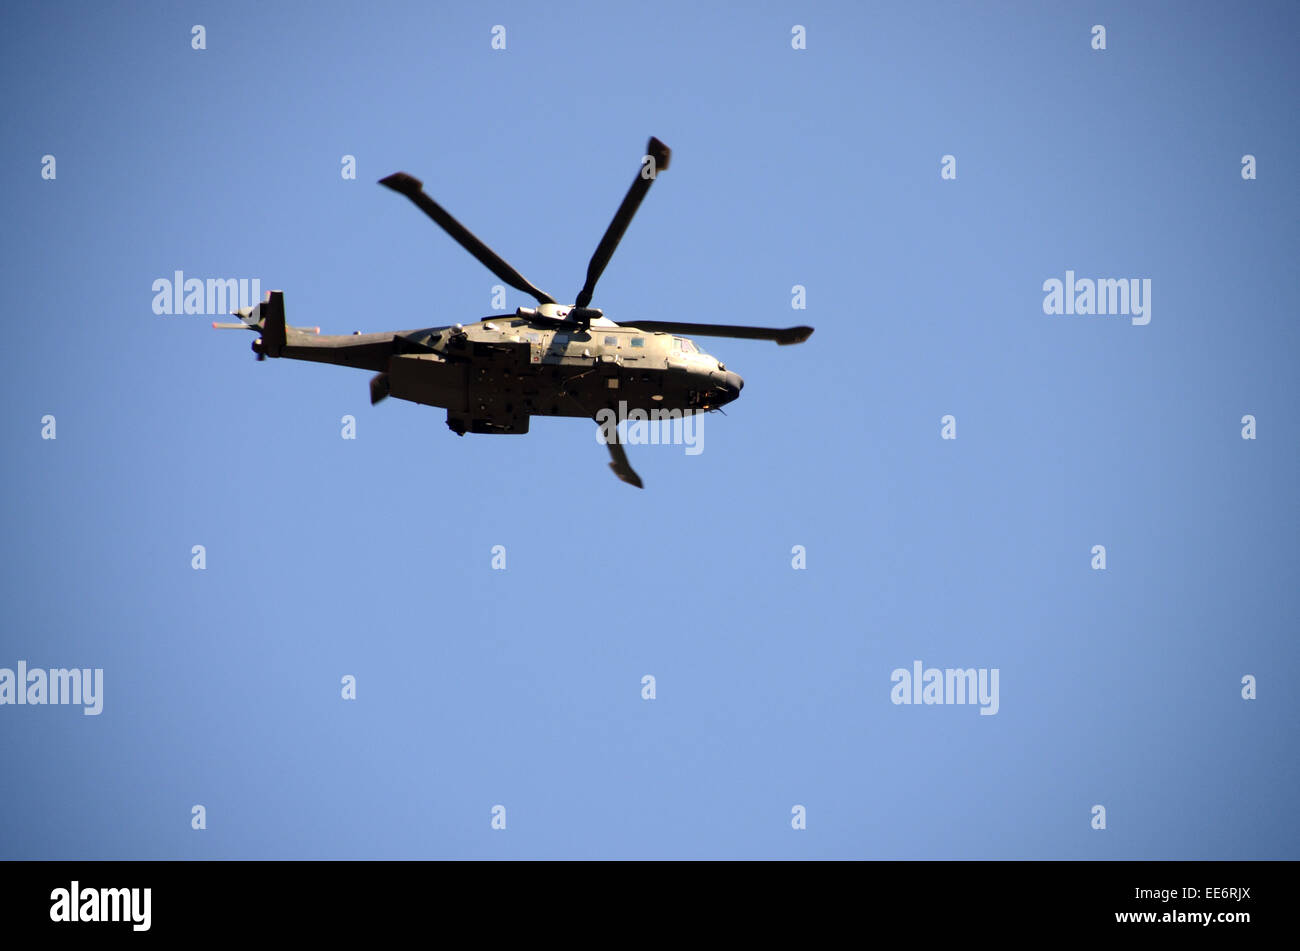 m-17 british army russian made helicopter Stock Photo